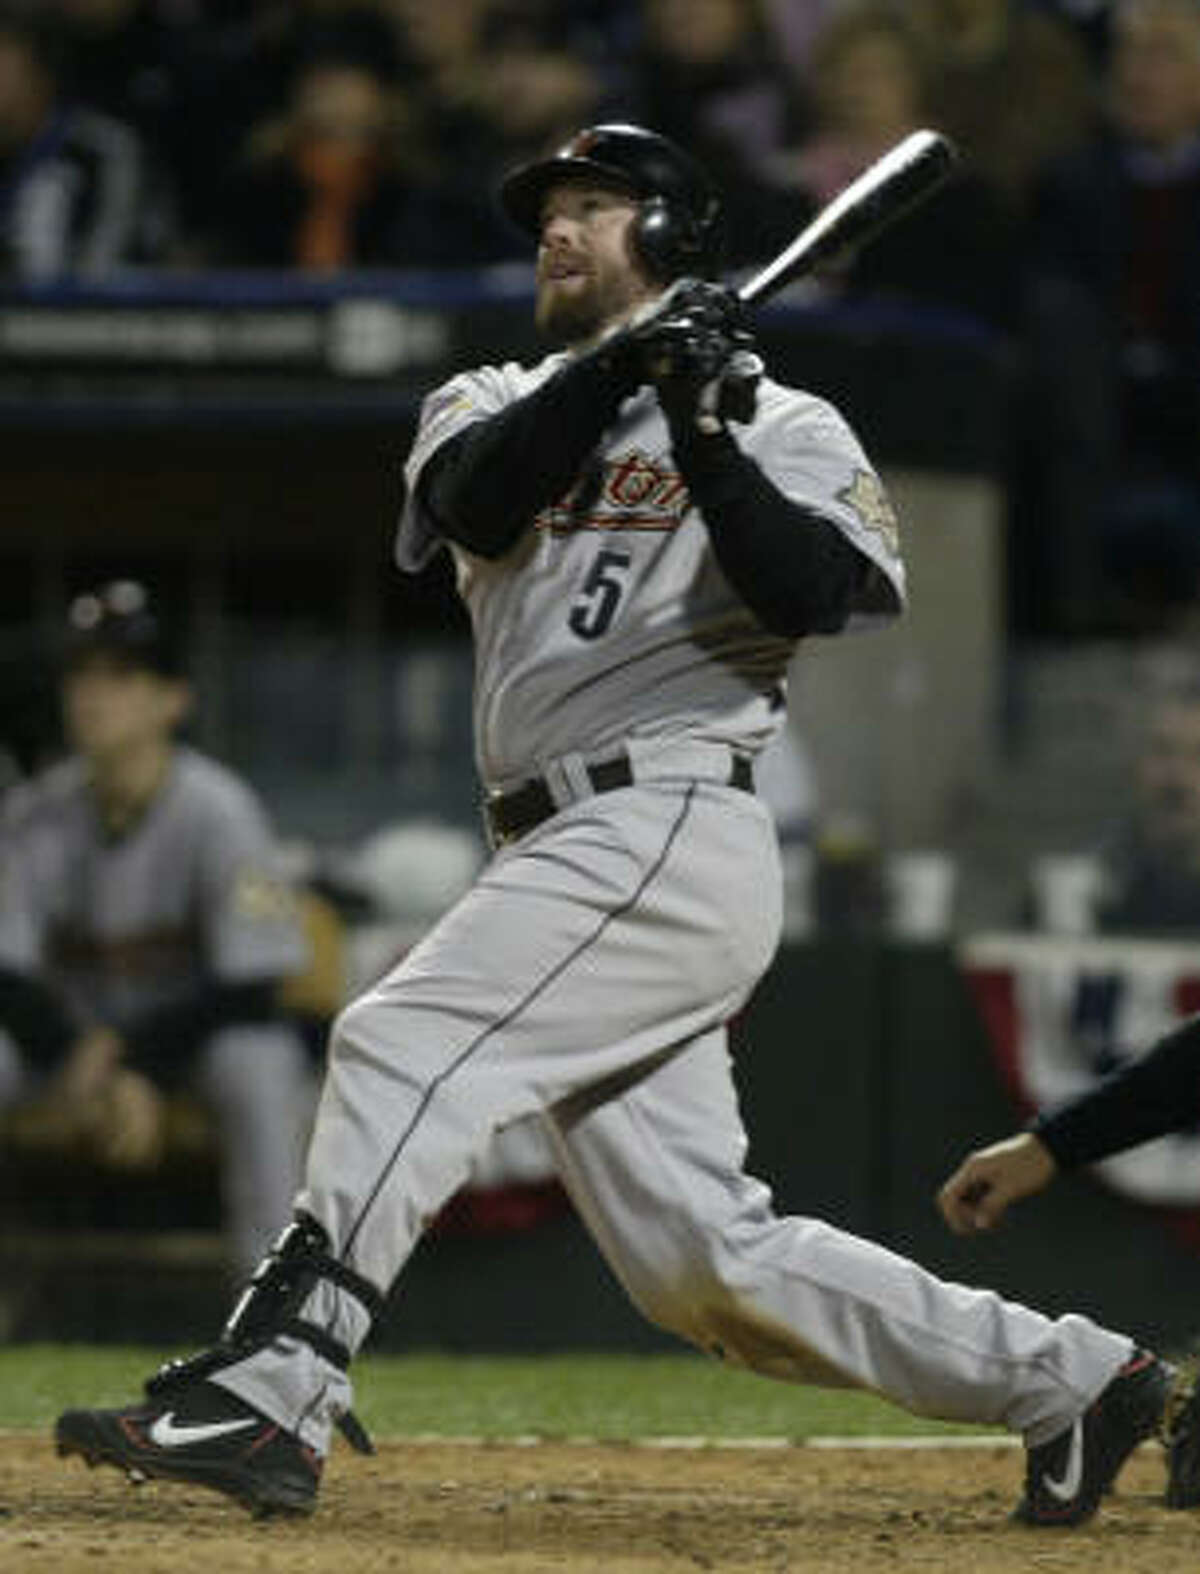 Bothered by a degenerative right shoulder, Jeff Bagwell was used as the DH in Game 1. He went 0 for 2 in his World Series debut.